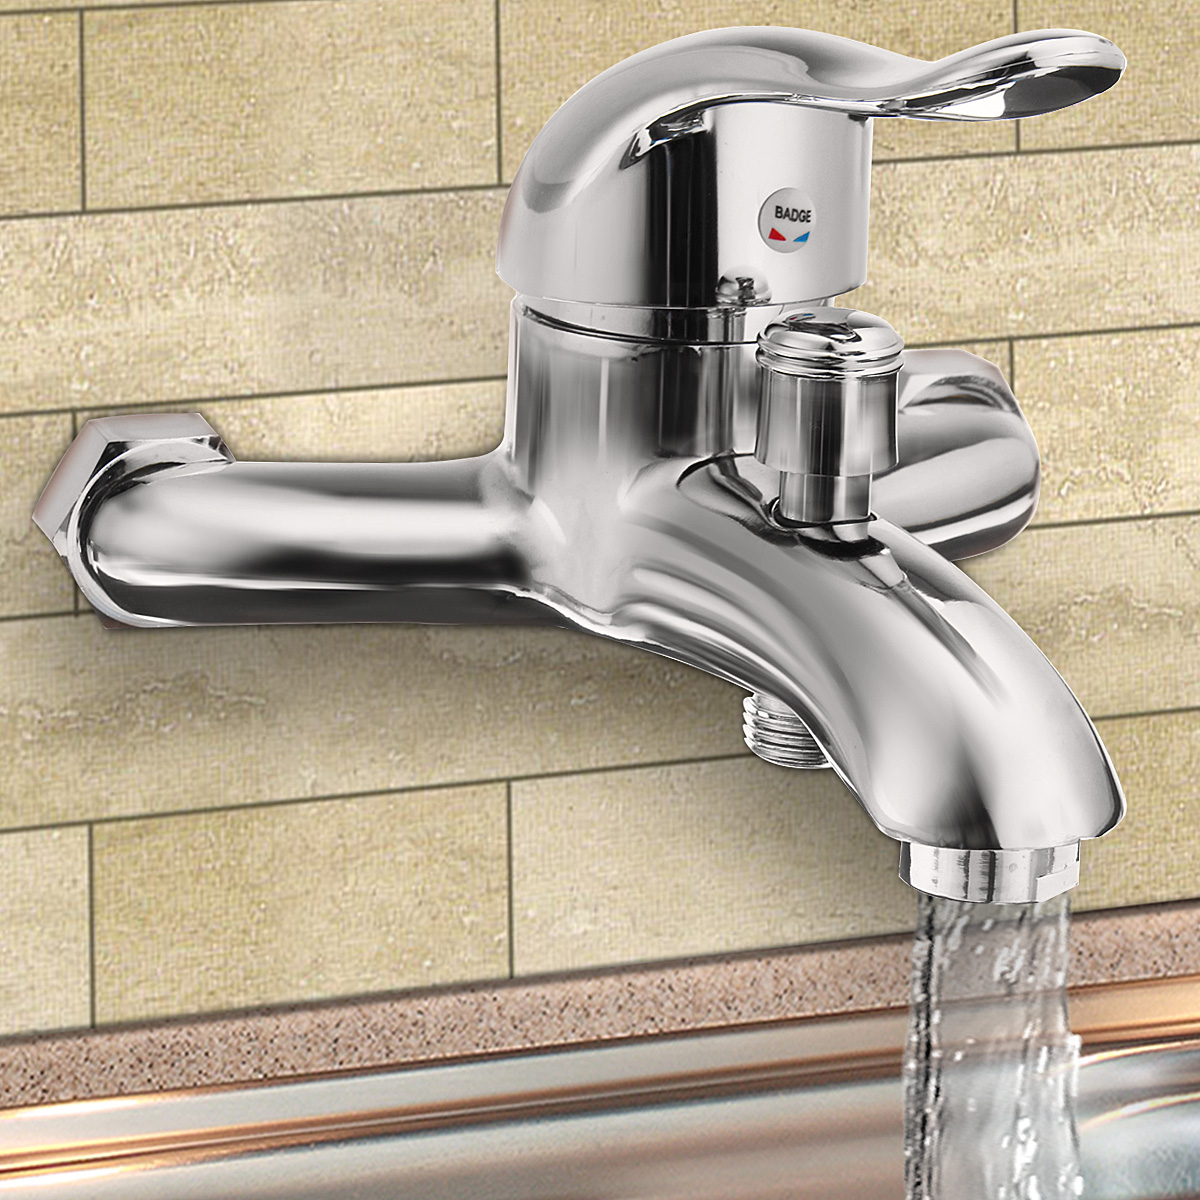 Xueqin Chrome Polished Wall Mounted Bathroom Faucet Mixer Tap Bath Tub Valve Shower Faucets Single Handle Cold And Hot WaterXueqin Chrome Polished Wall Mounted Bathroom Faucet Mixer Tap Bath Tub Valve Shower Faucets Single Handle Cold And Hot Water